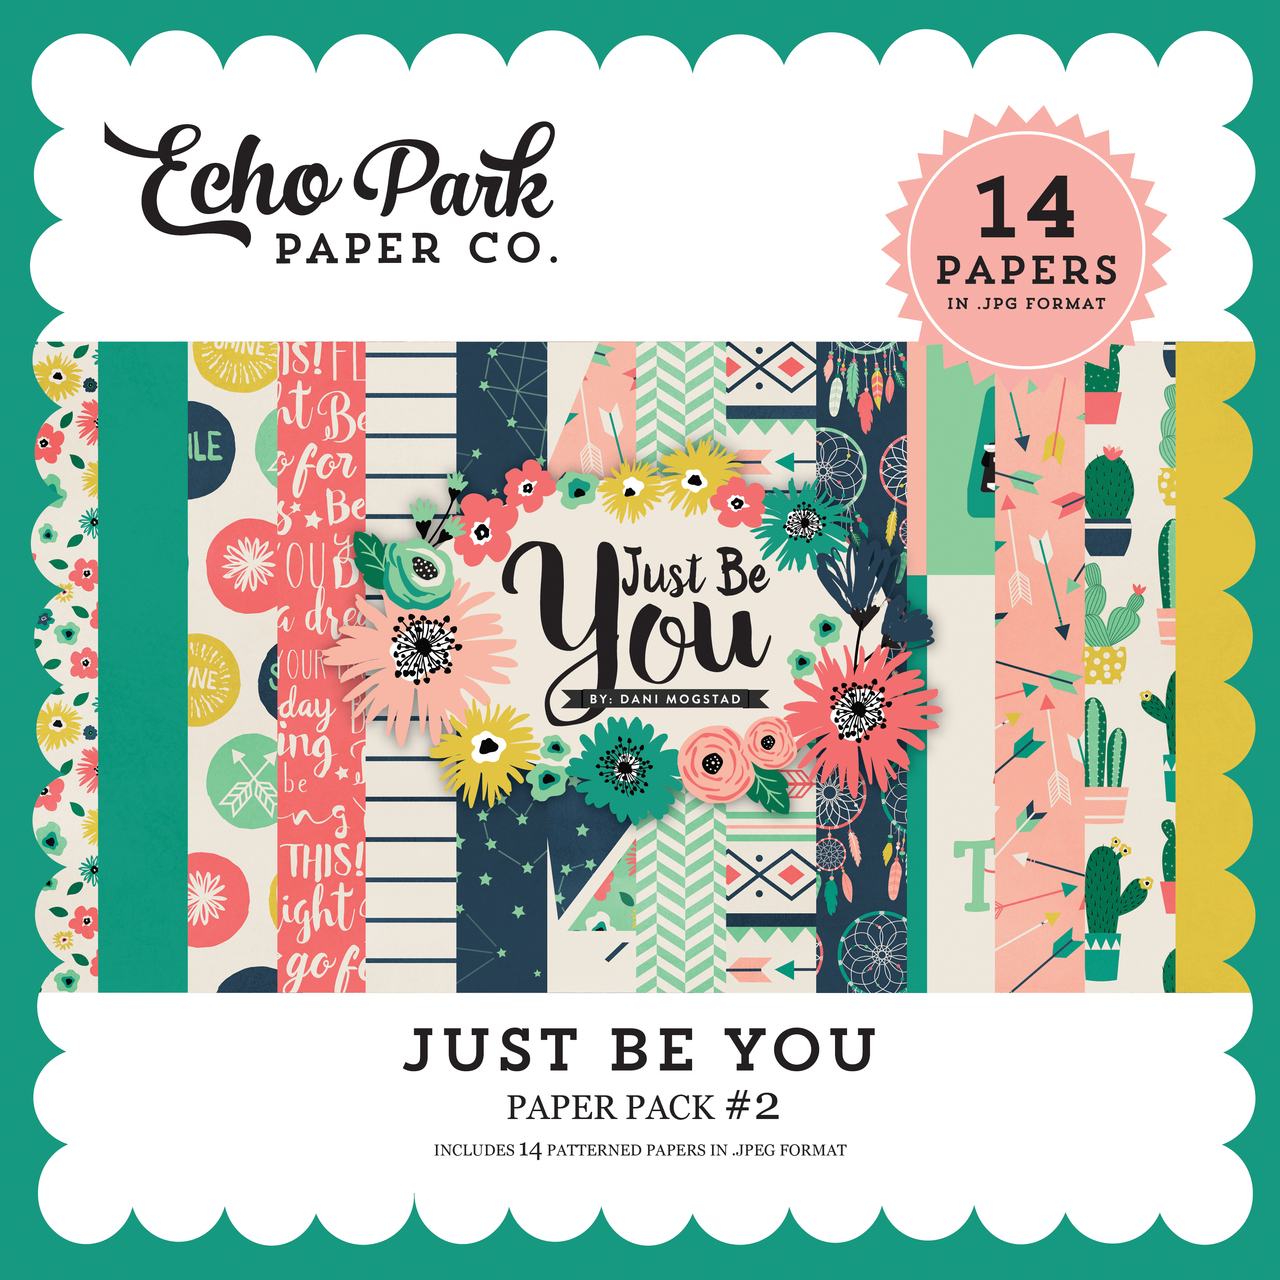 Just Be You Paper Pack #2